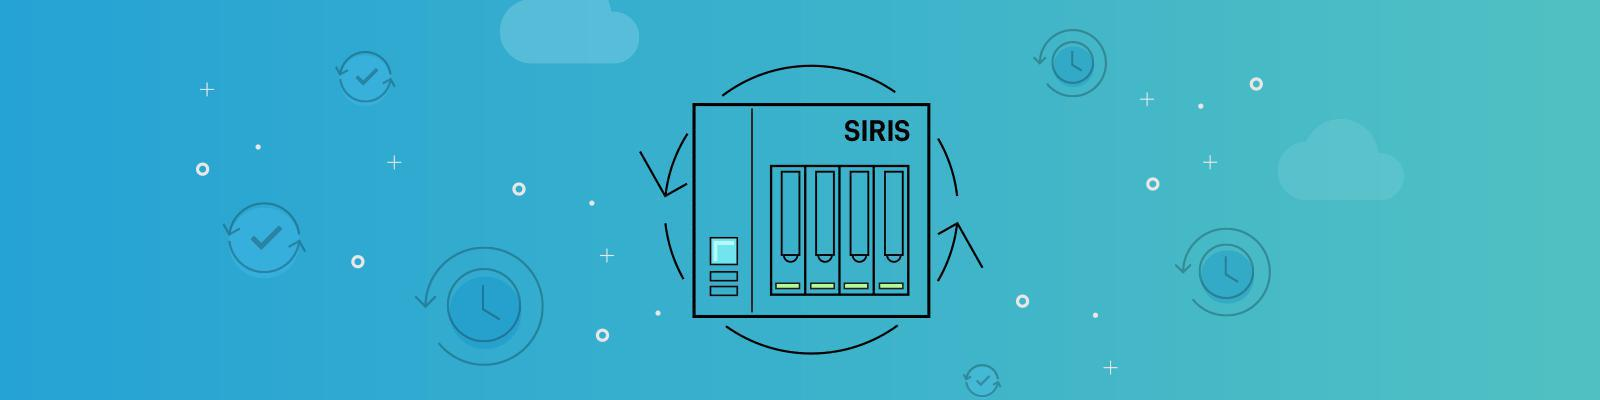 A Look at the Datto SIRIS Platform